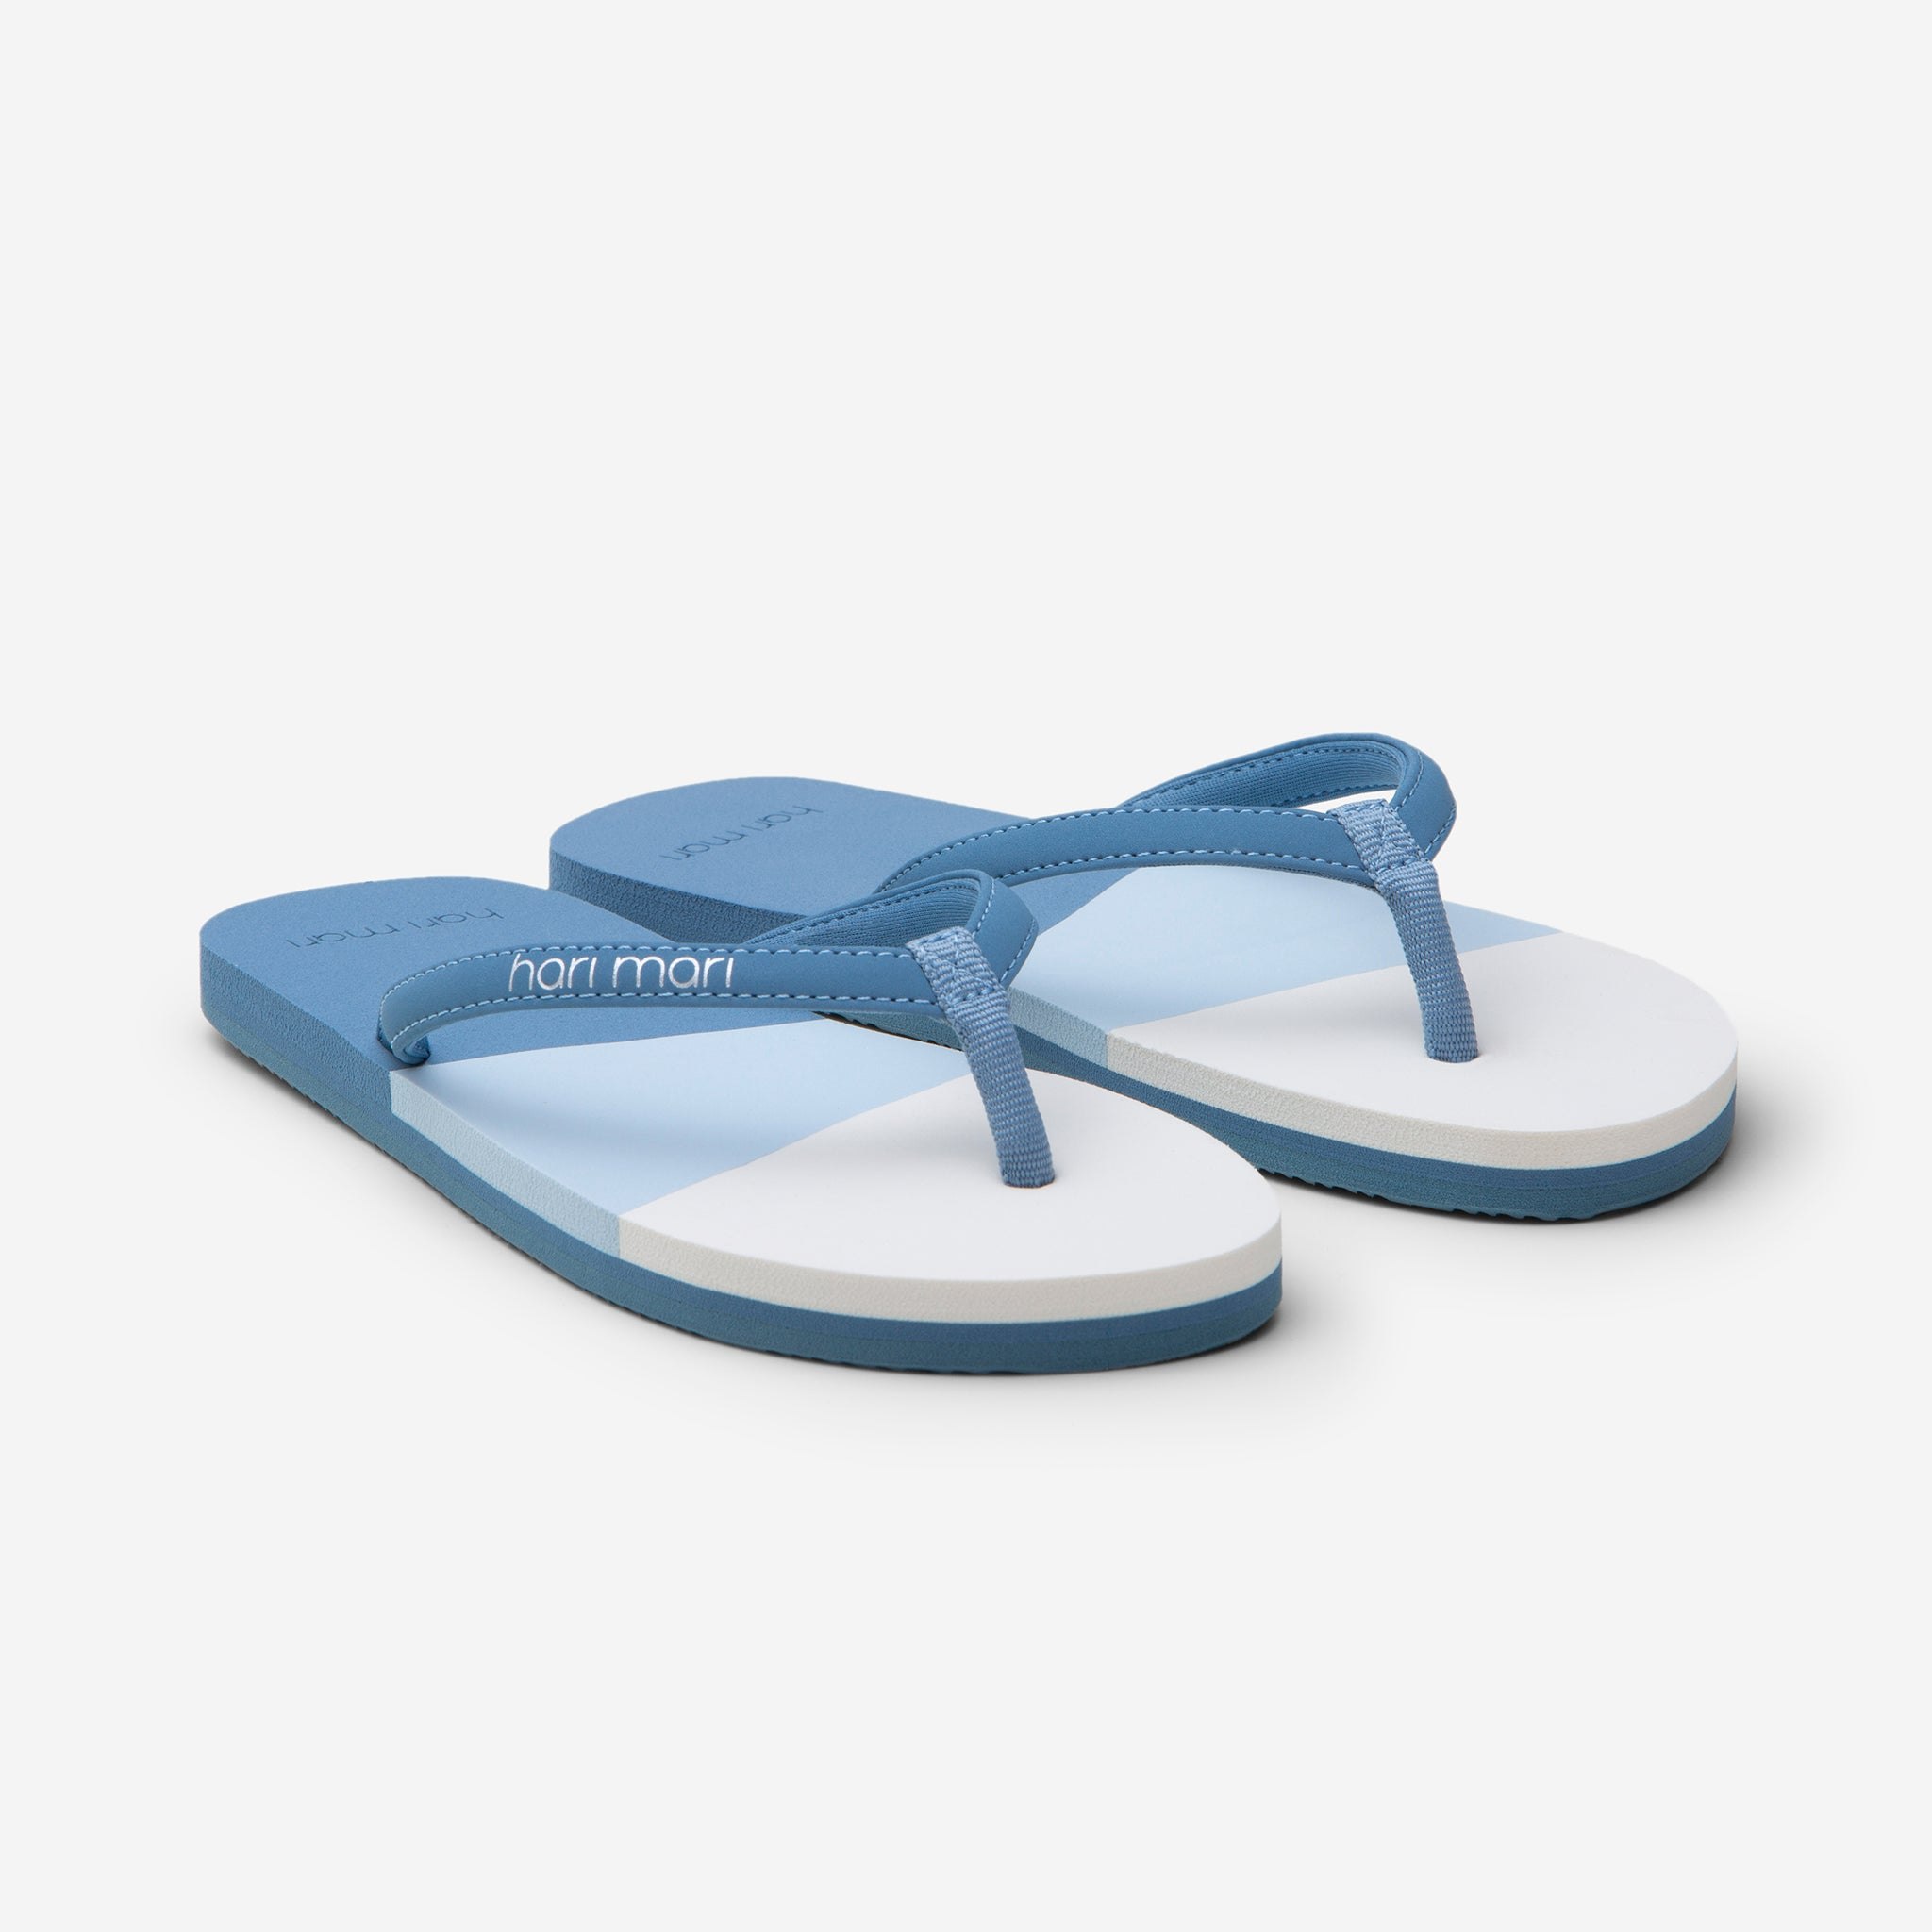 Hari Mari Youth Meadows Asana Flip Flops in Dusty Blue with multi colors on white background